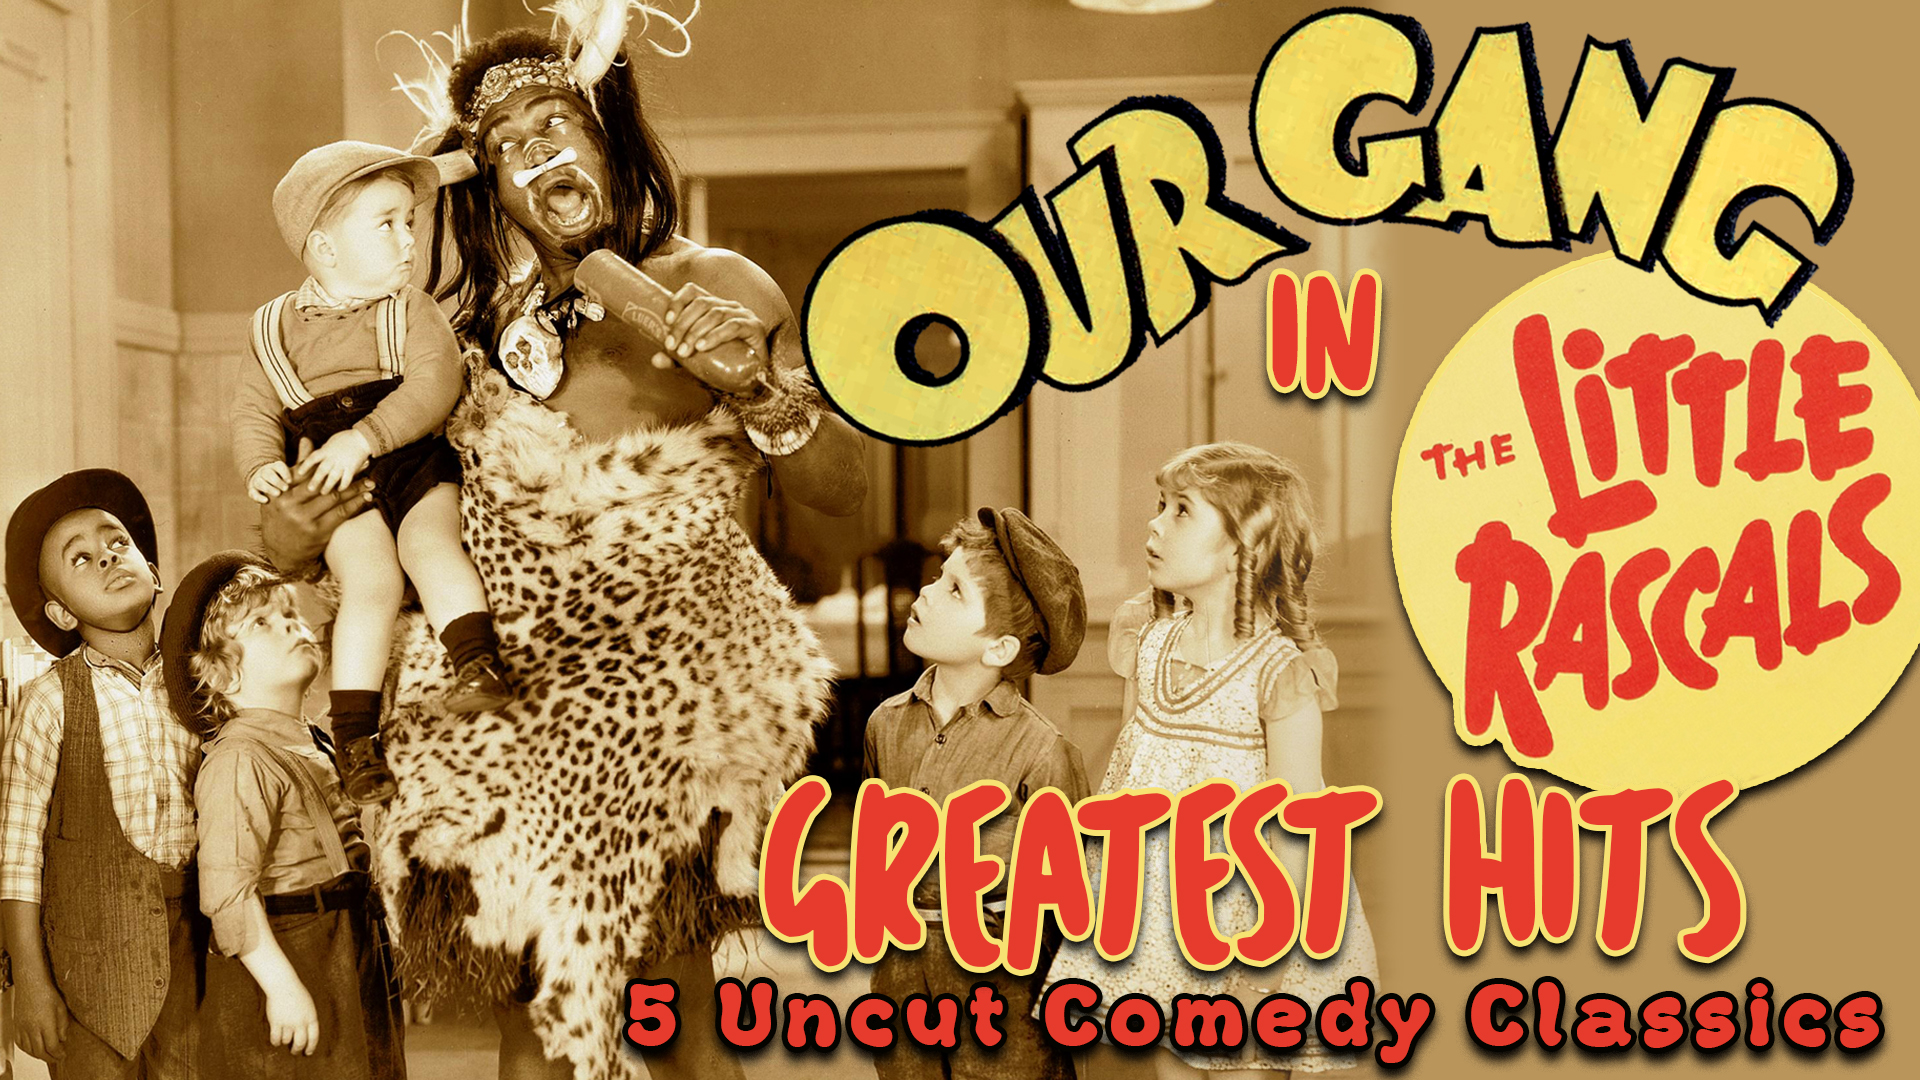 """Our Gang in """"Little Rascals Greatest Hits"""" - 5 Uncut Comedy Classics"""